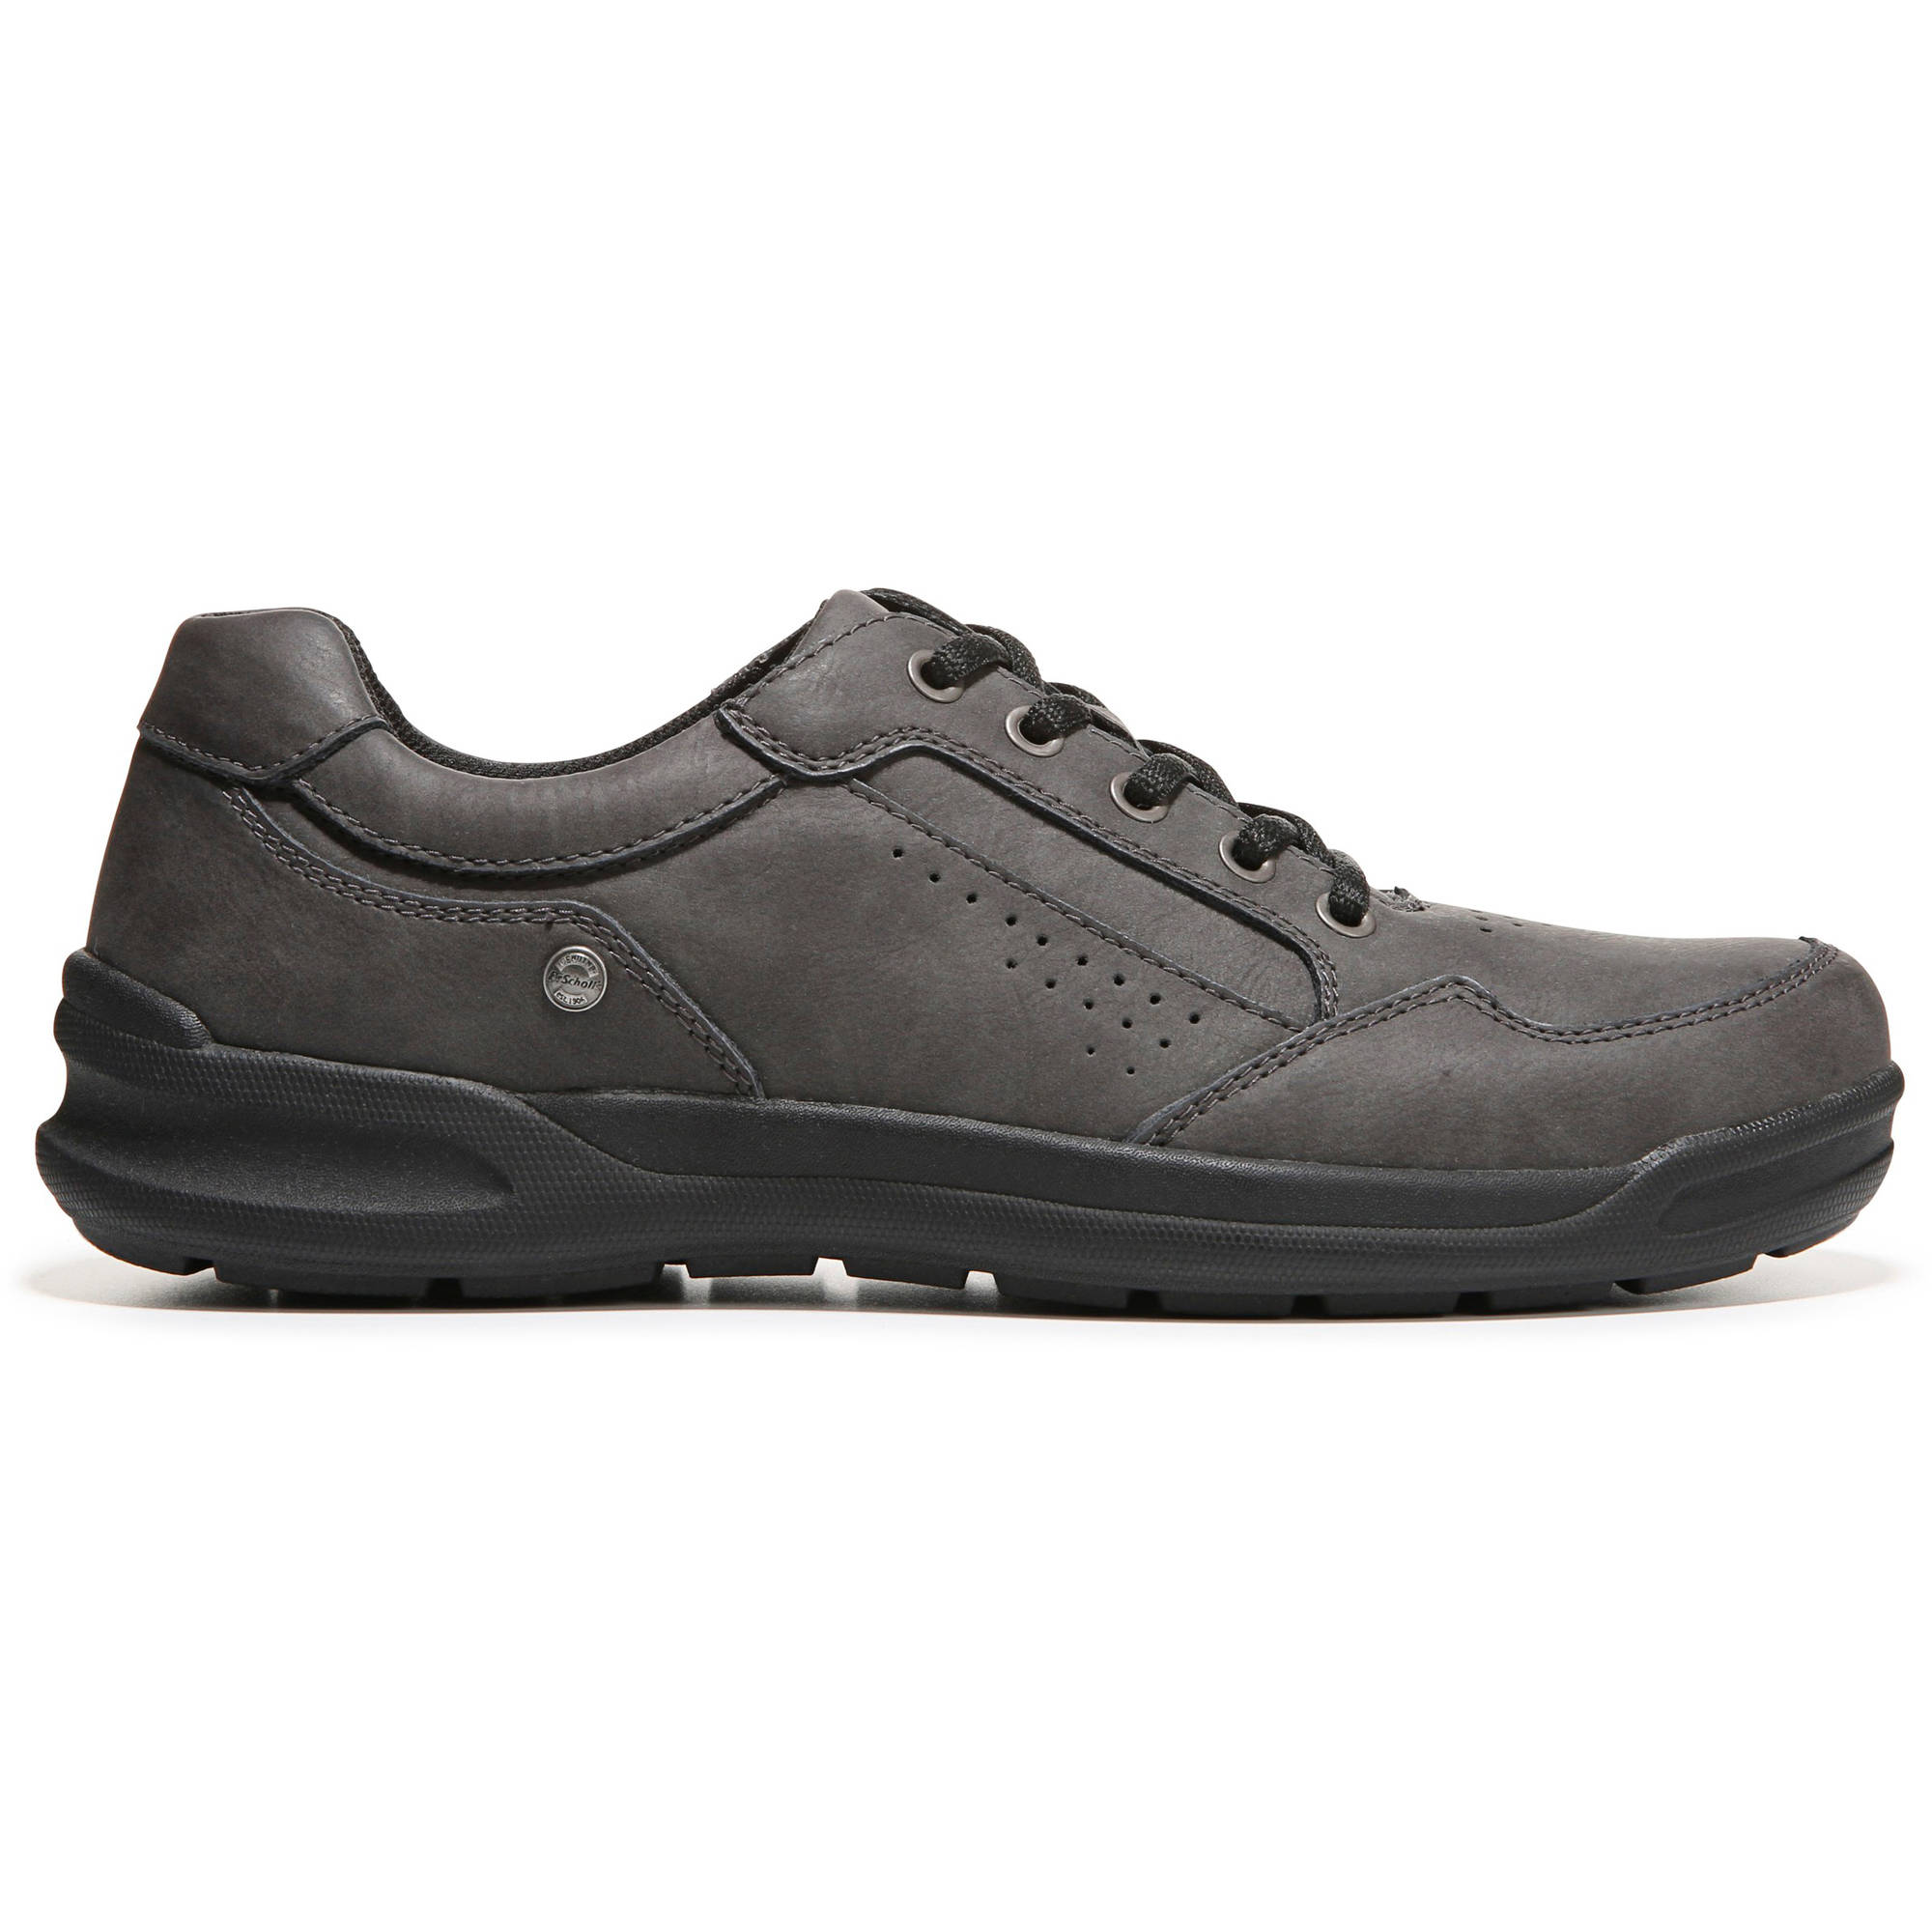 Dr. Scholl's Men's Fox Casual Oxford Wide Width Shoe - Walmart.com